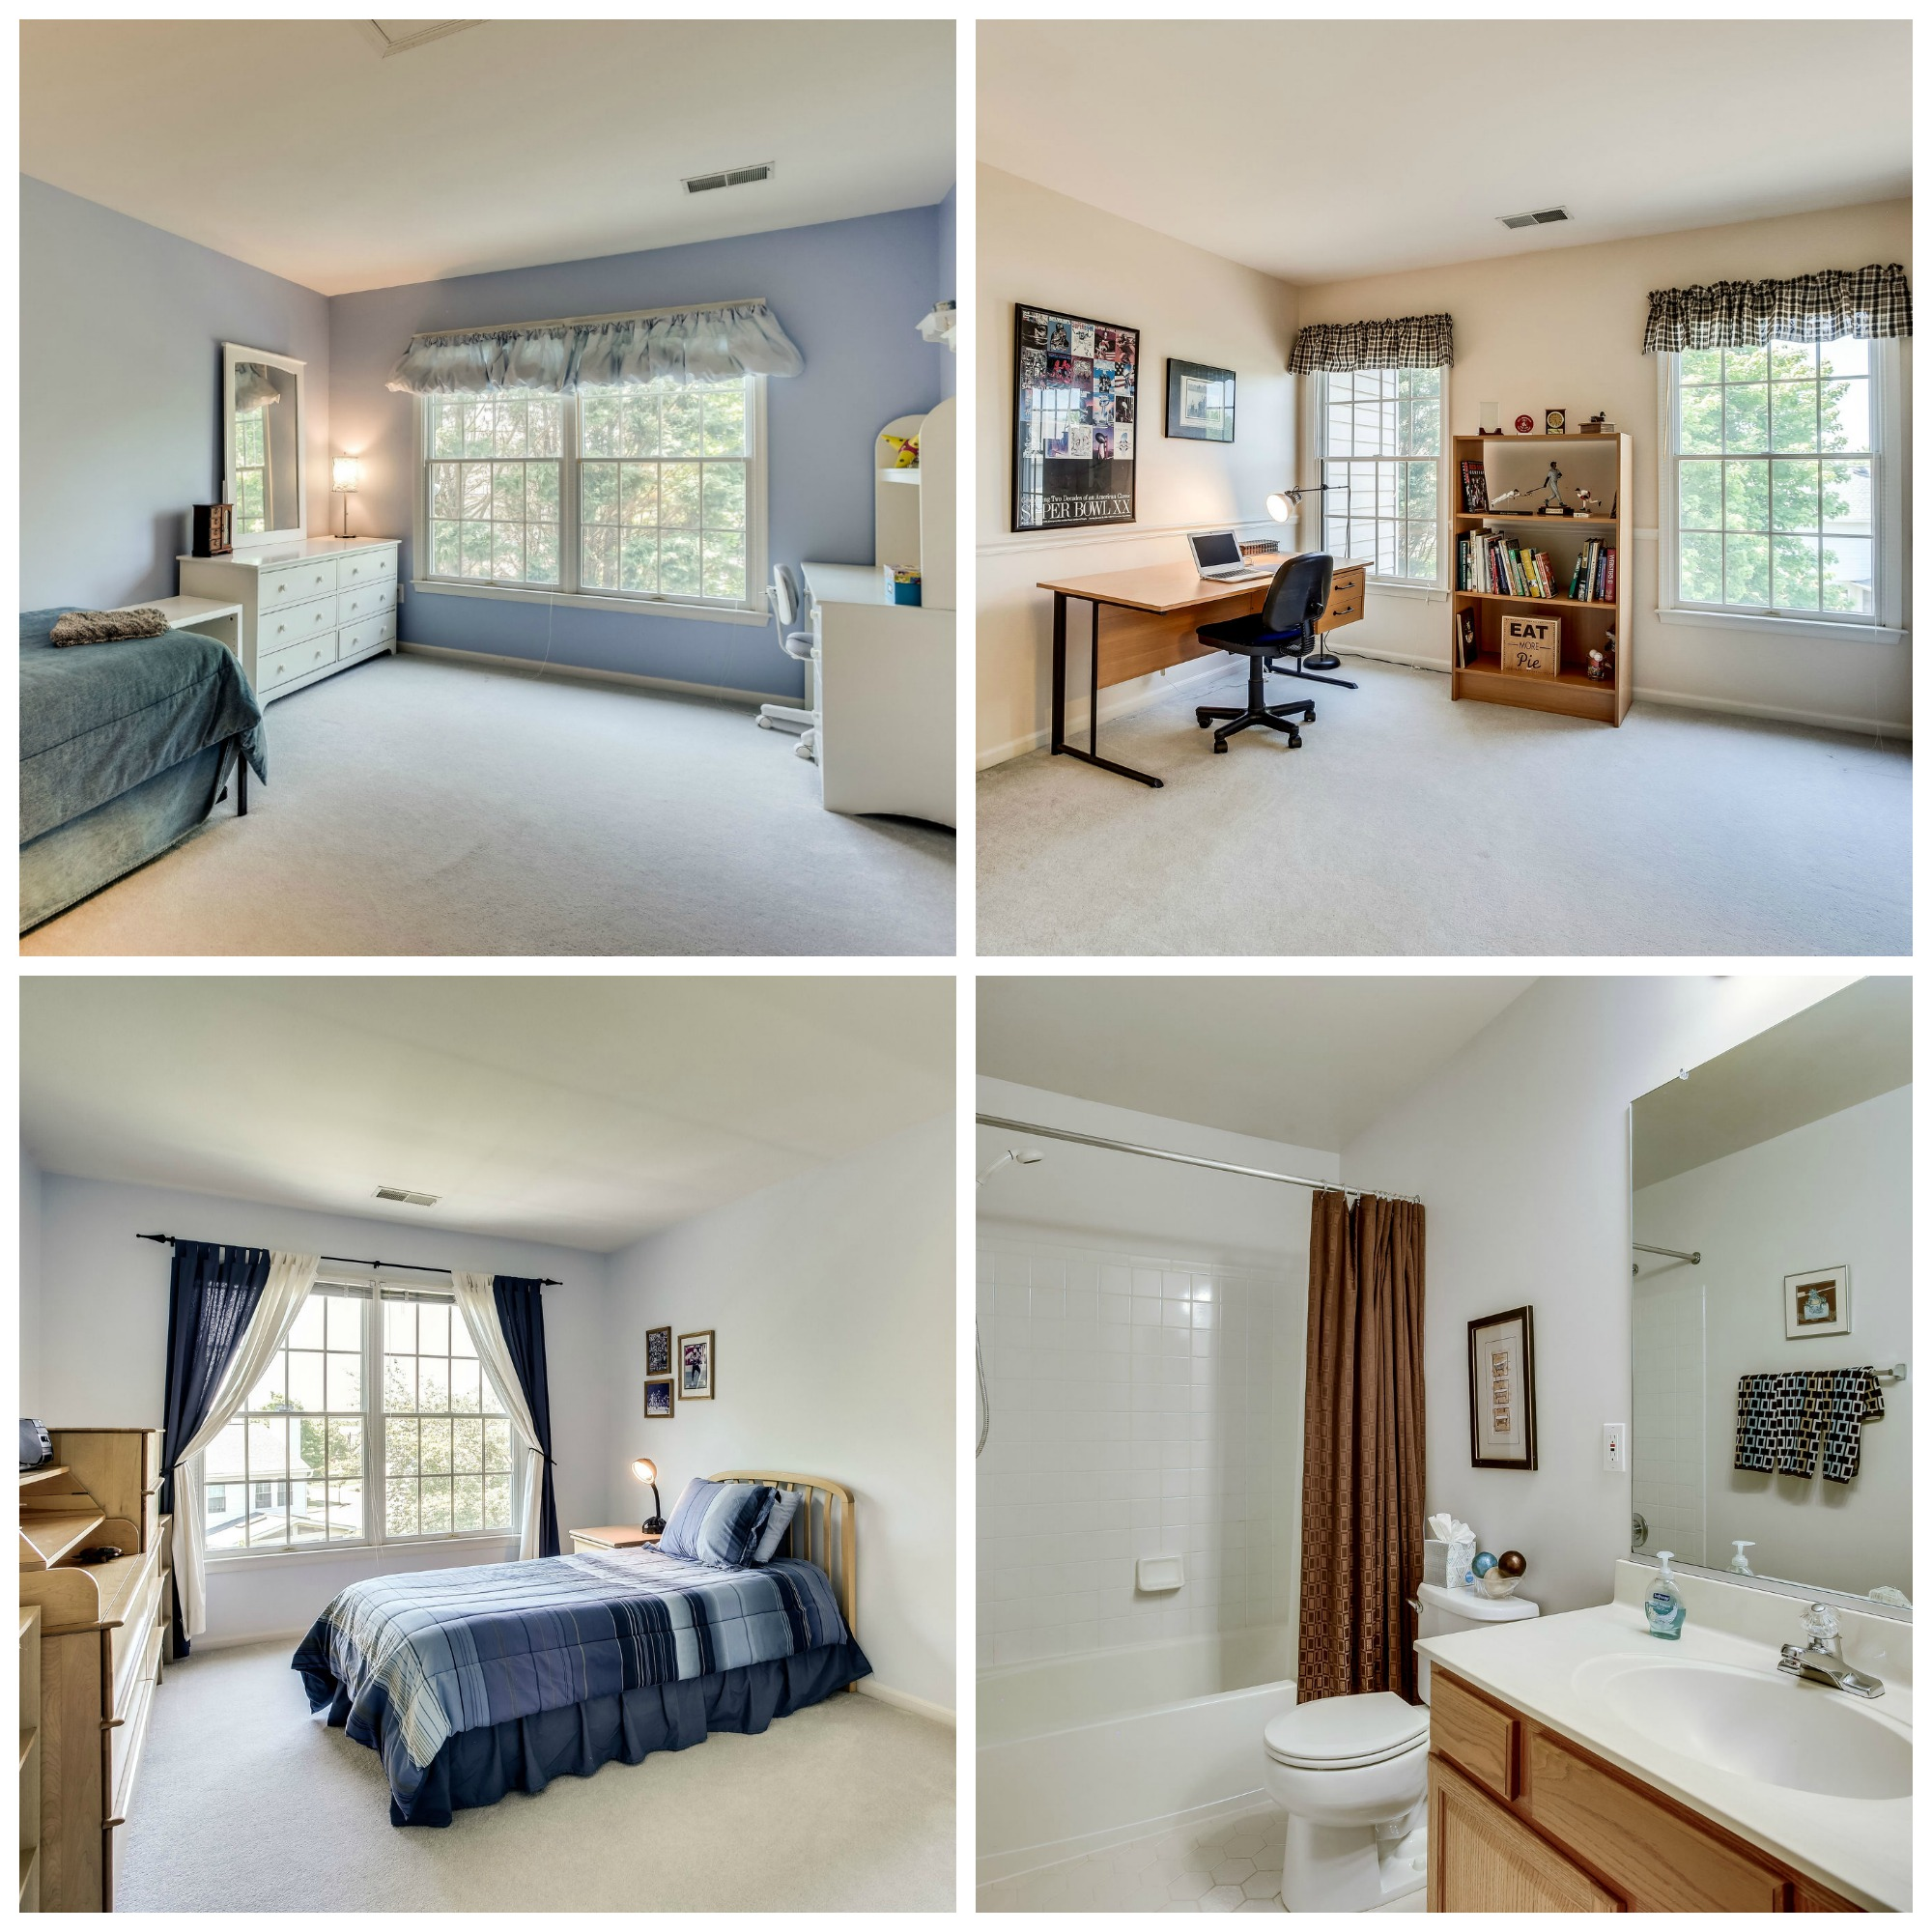 47822 Blockhouse Point Pl- Lowes Island- Additional Bedrooms and Bathroom